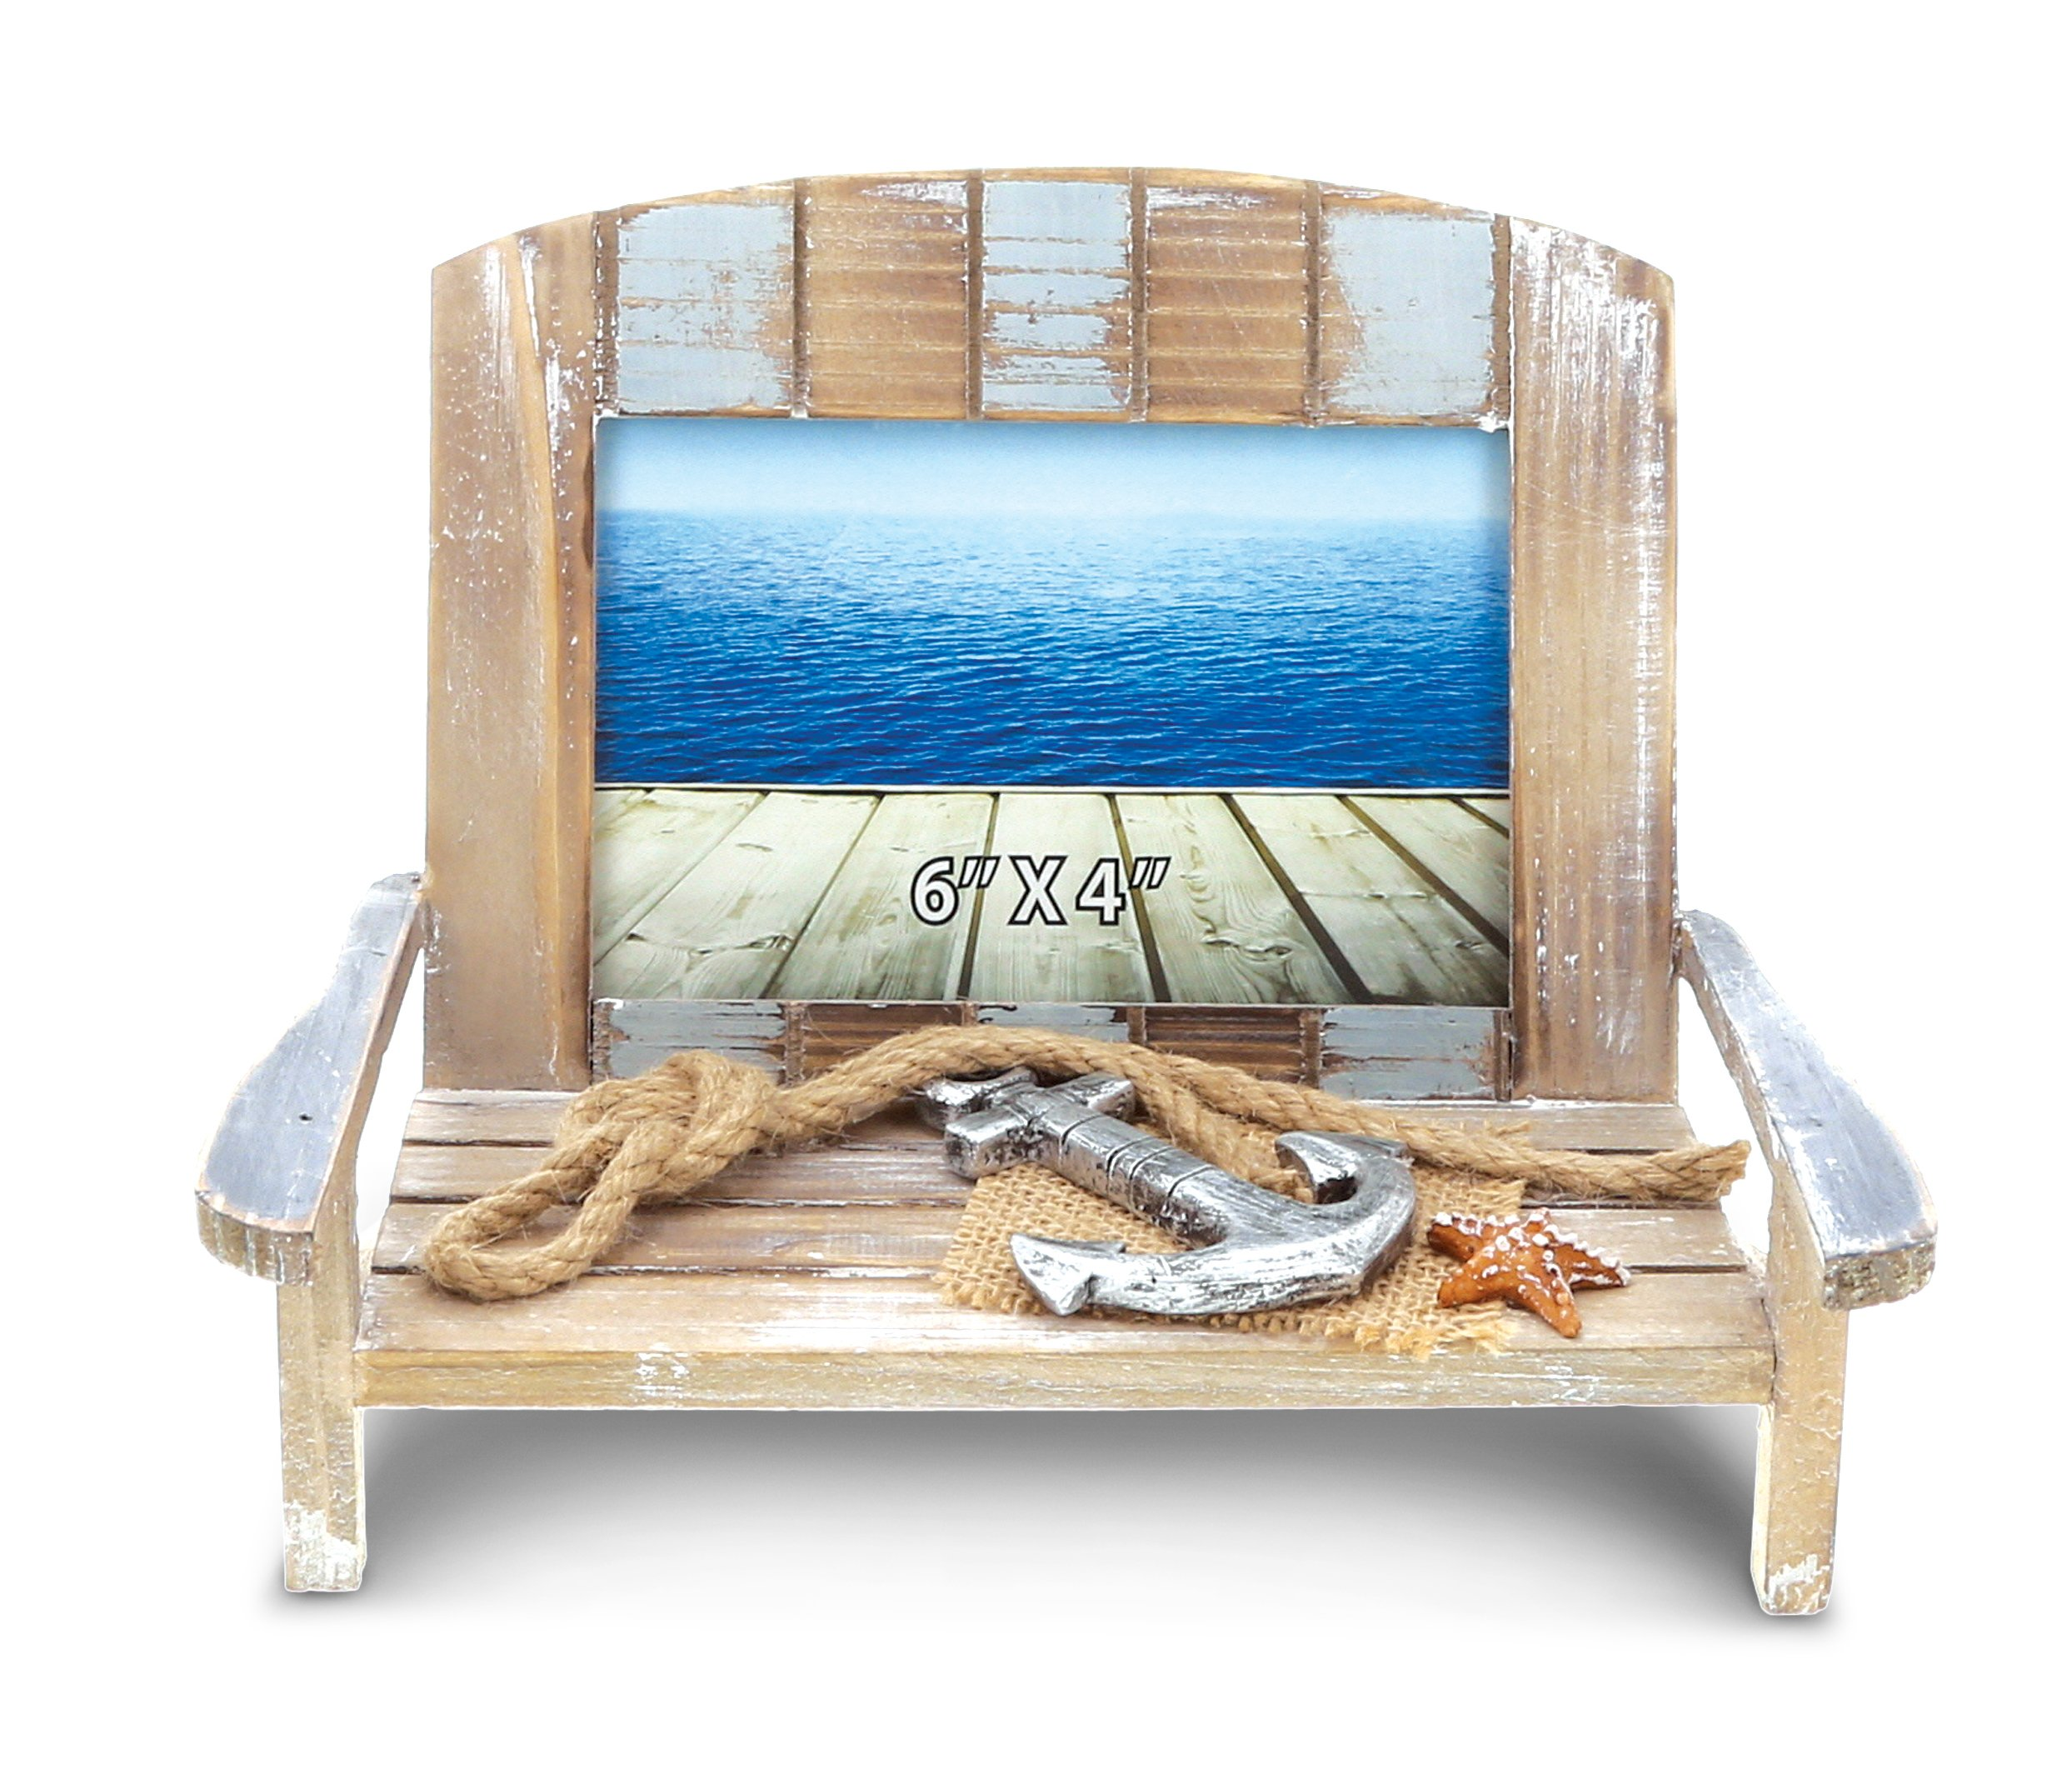 CoTa Global Neptune Beach Chair Photo Frame - Decorative Adirondack Miniature Chairs in Distressed Wood 4x6 Inch Beachcomber Weathered Vacation Memory Novelty Set - Nautical Themed Decor